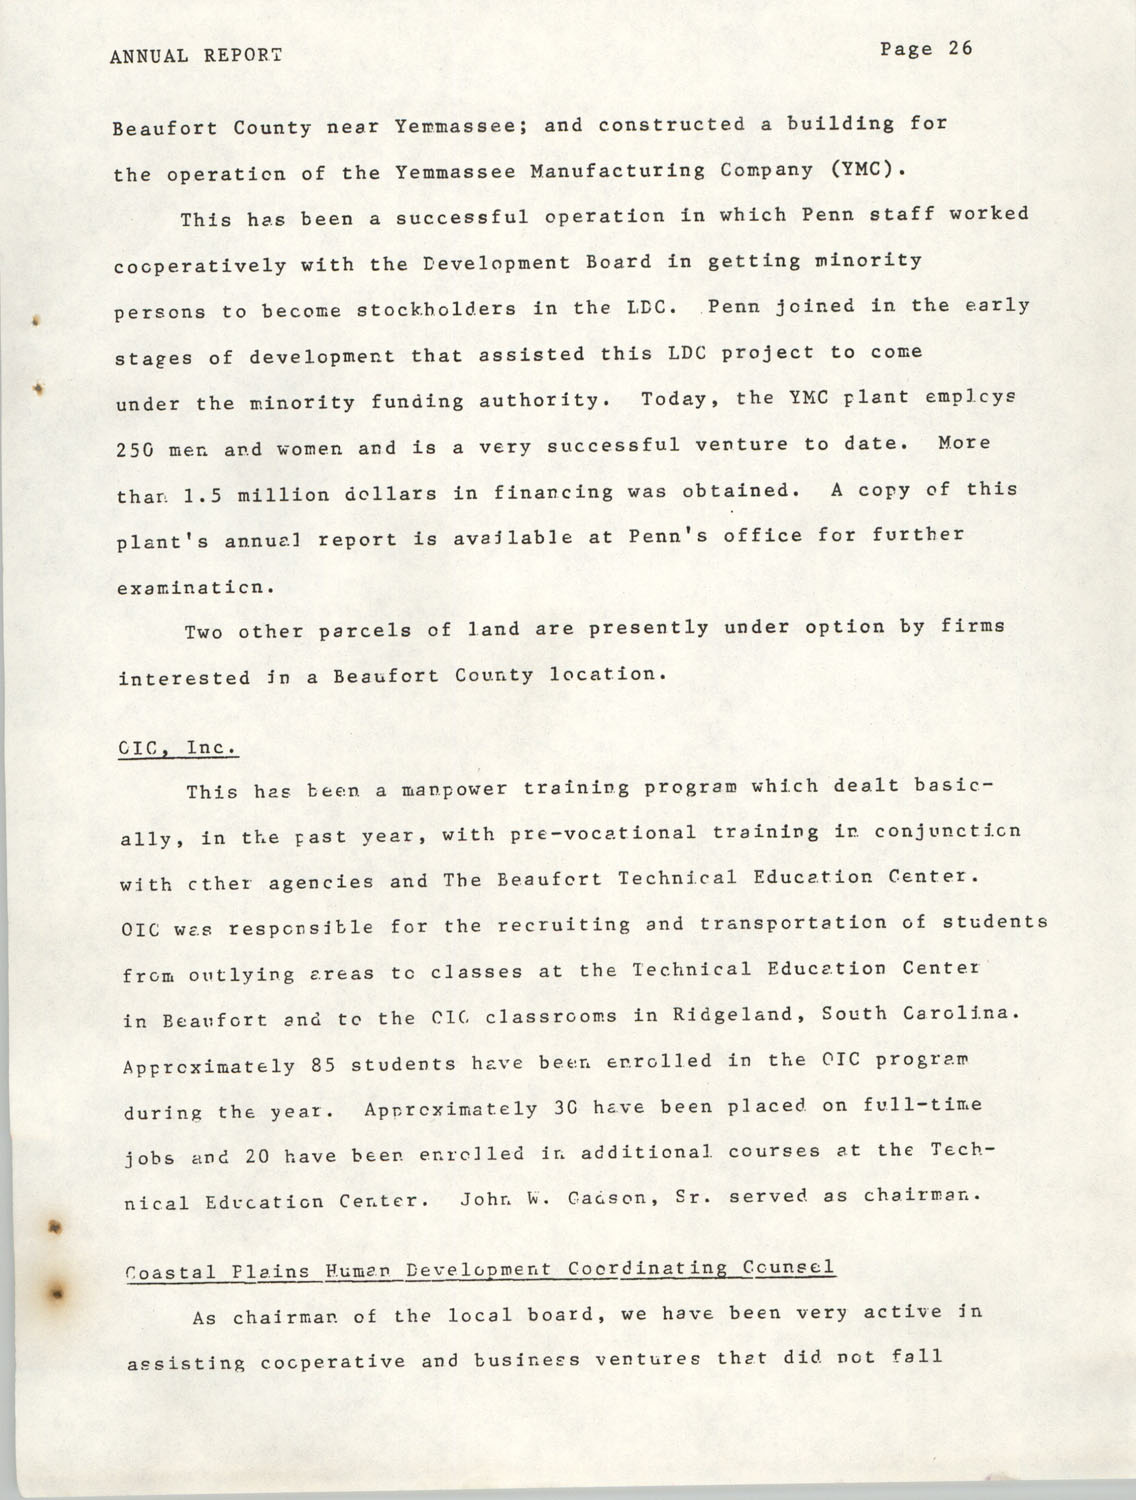 Annual Report, Penn Community Services, 1974, Page 26